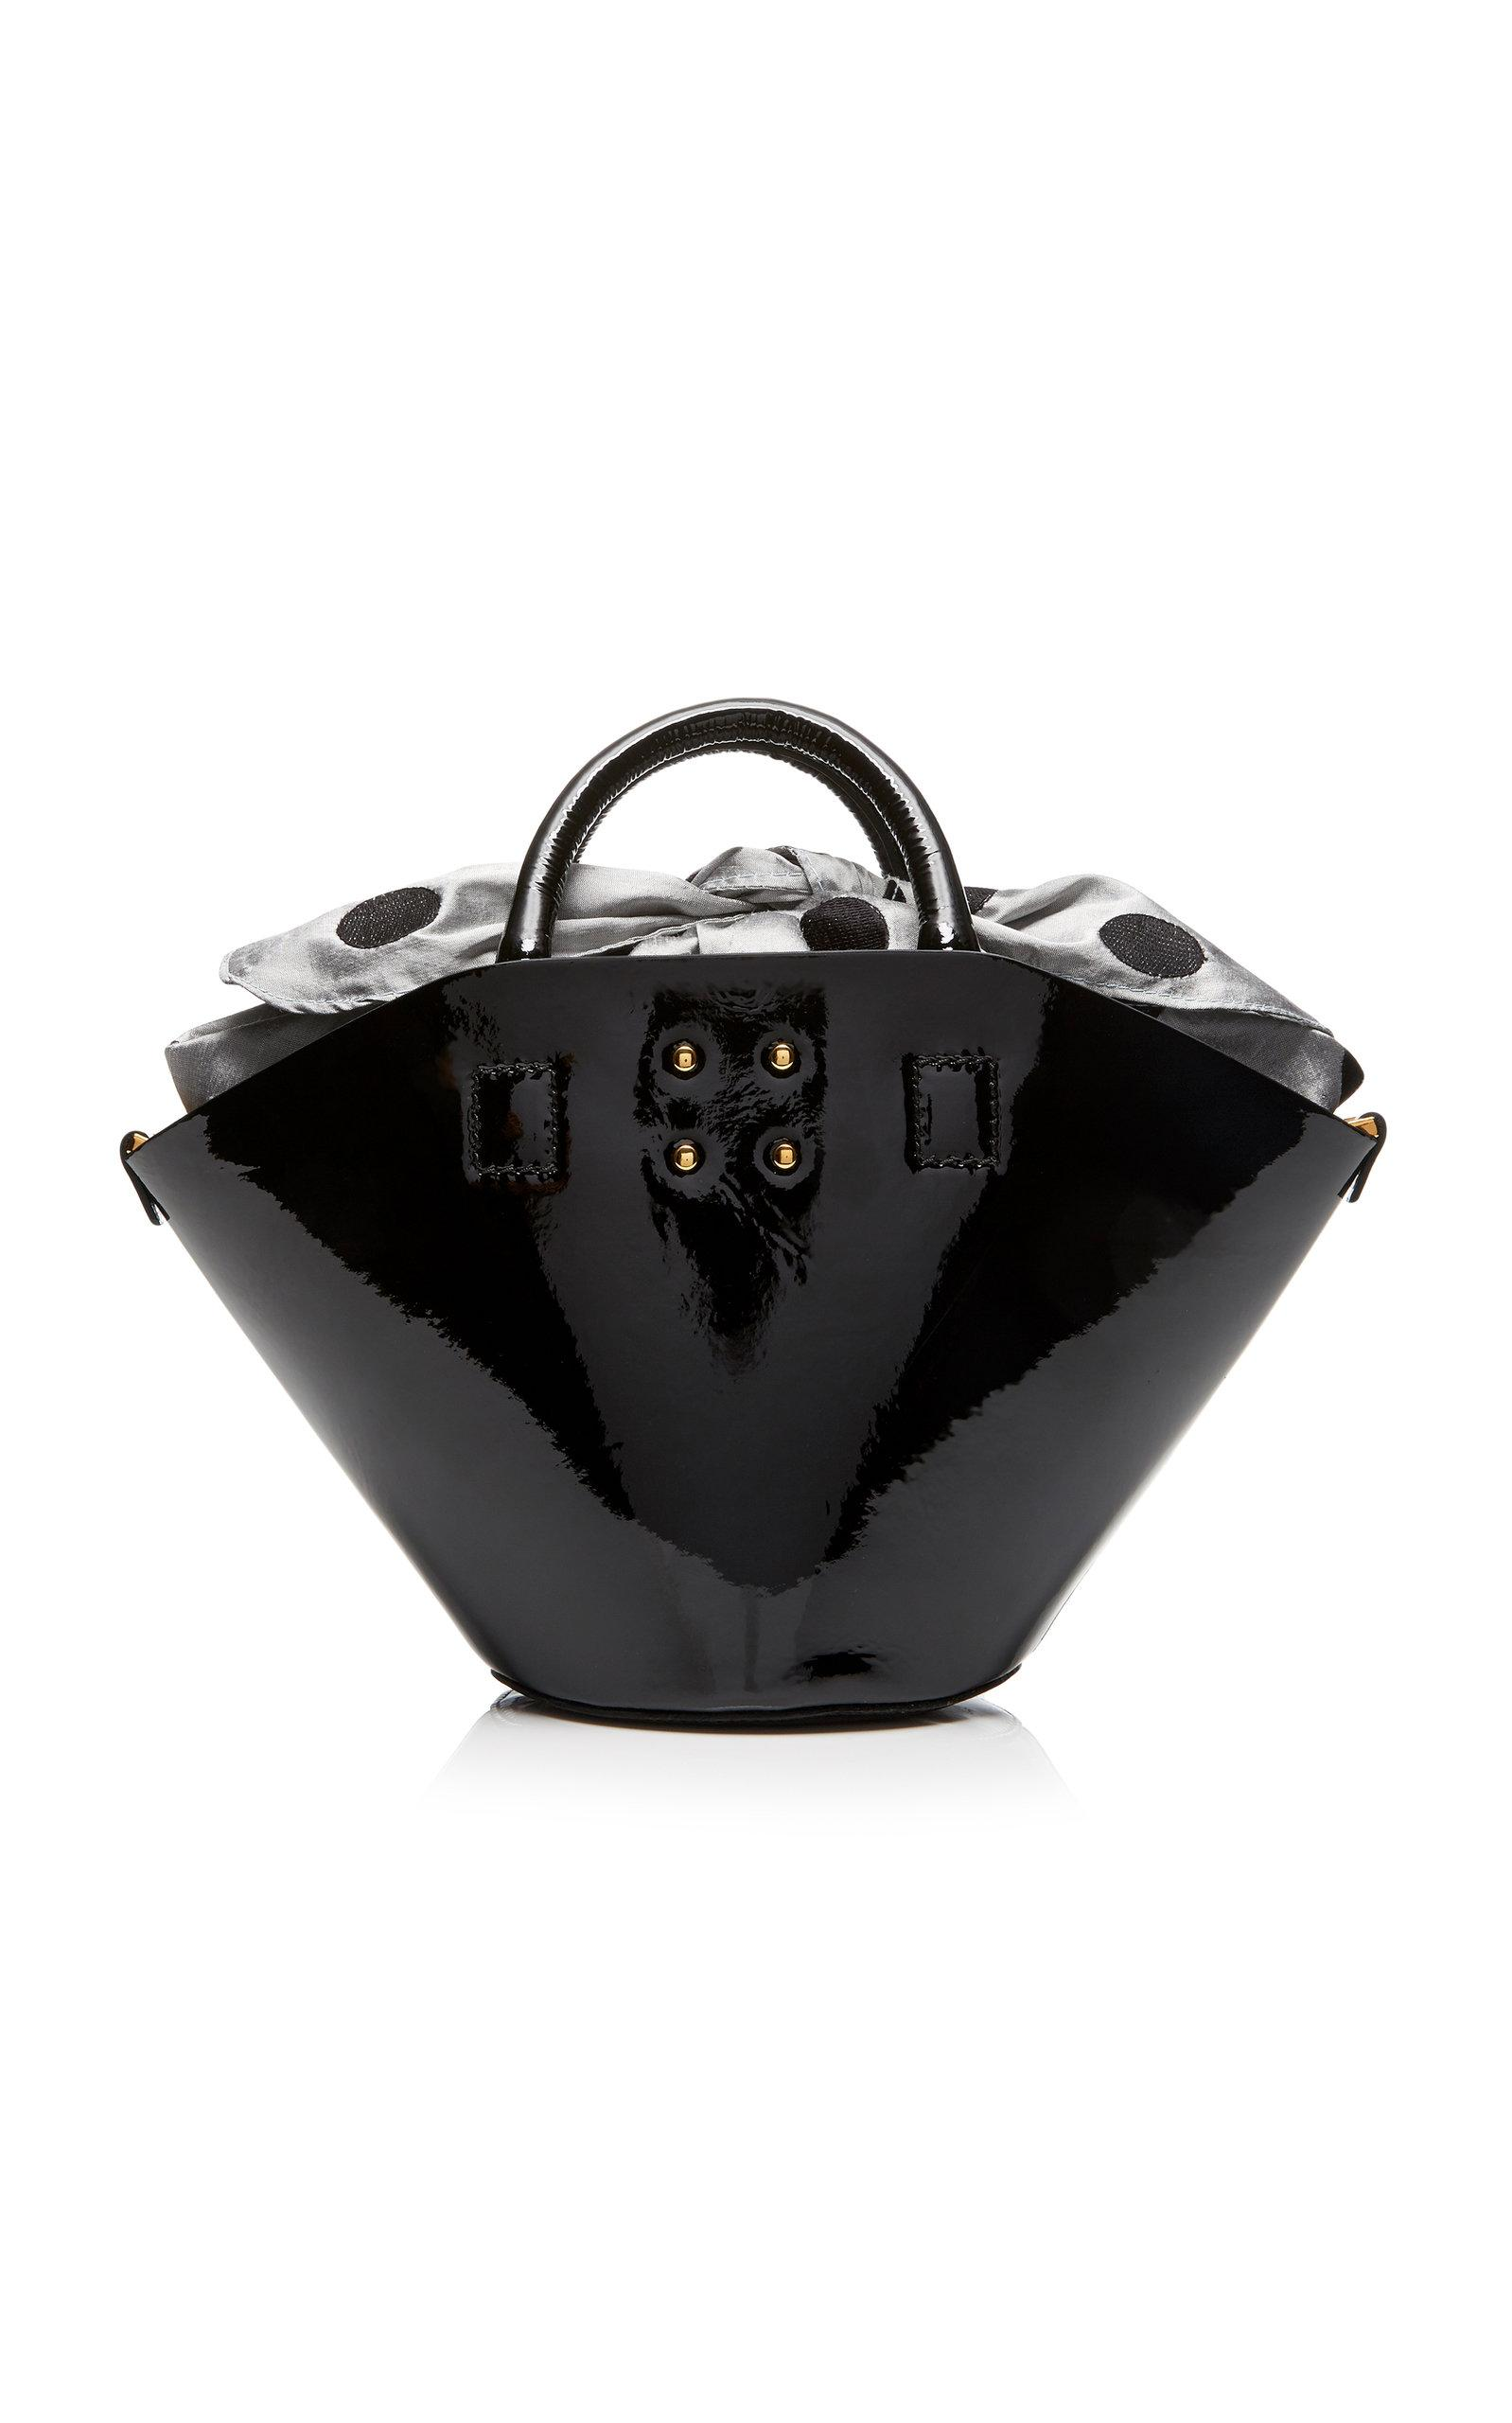 Trademark Small Patent Basket Bag In Black